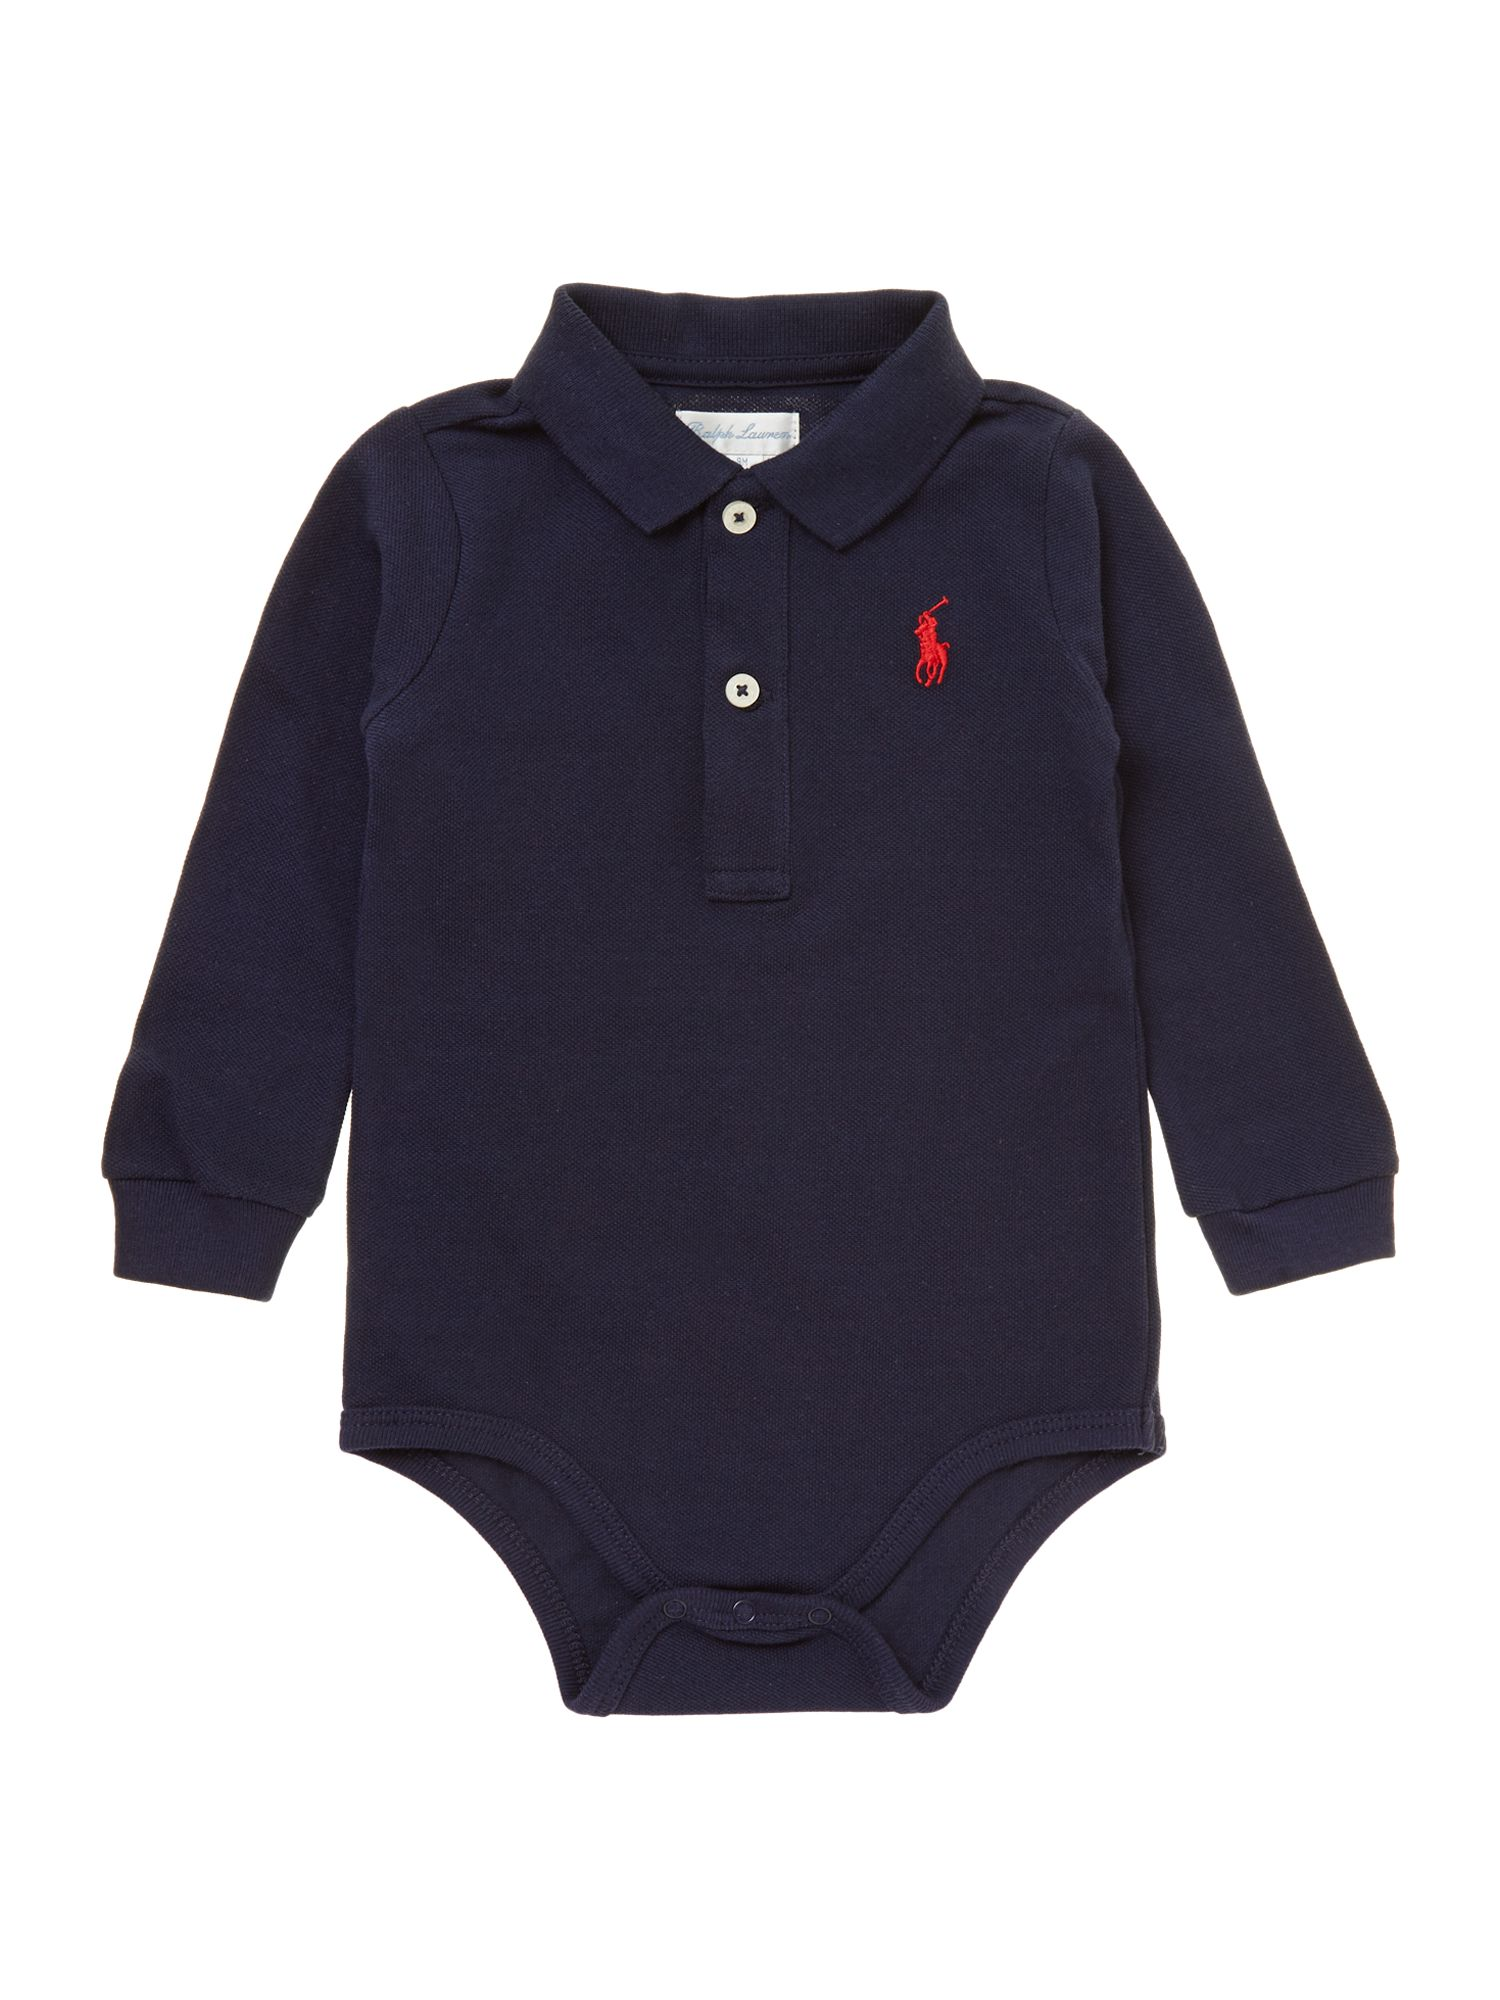 Baby boys polo body suit